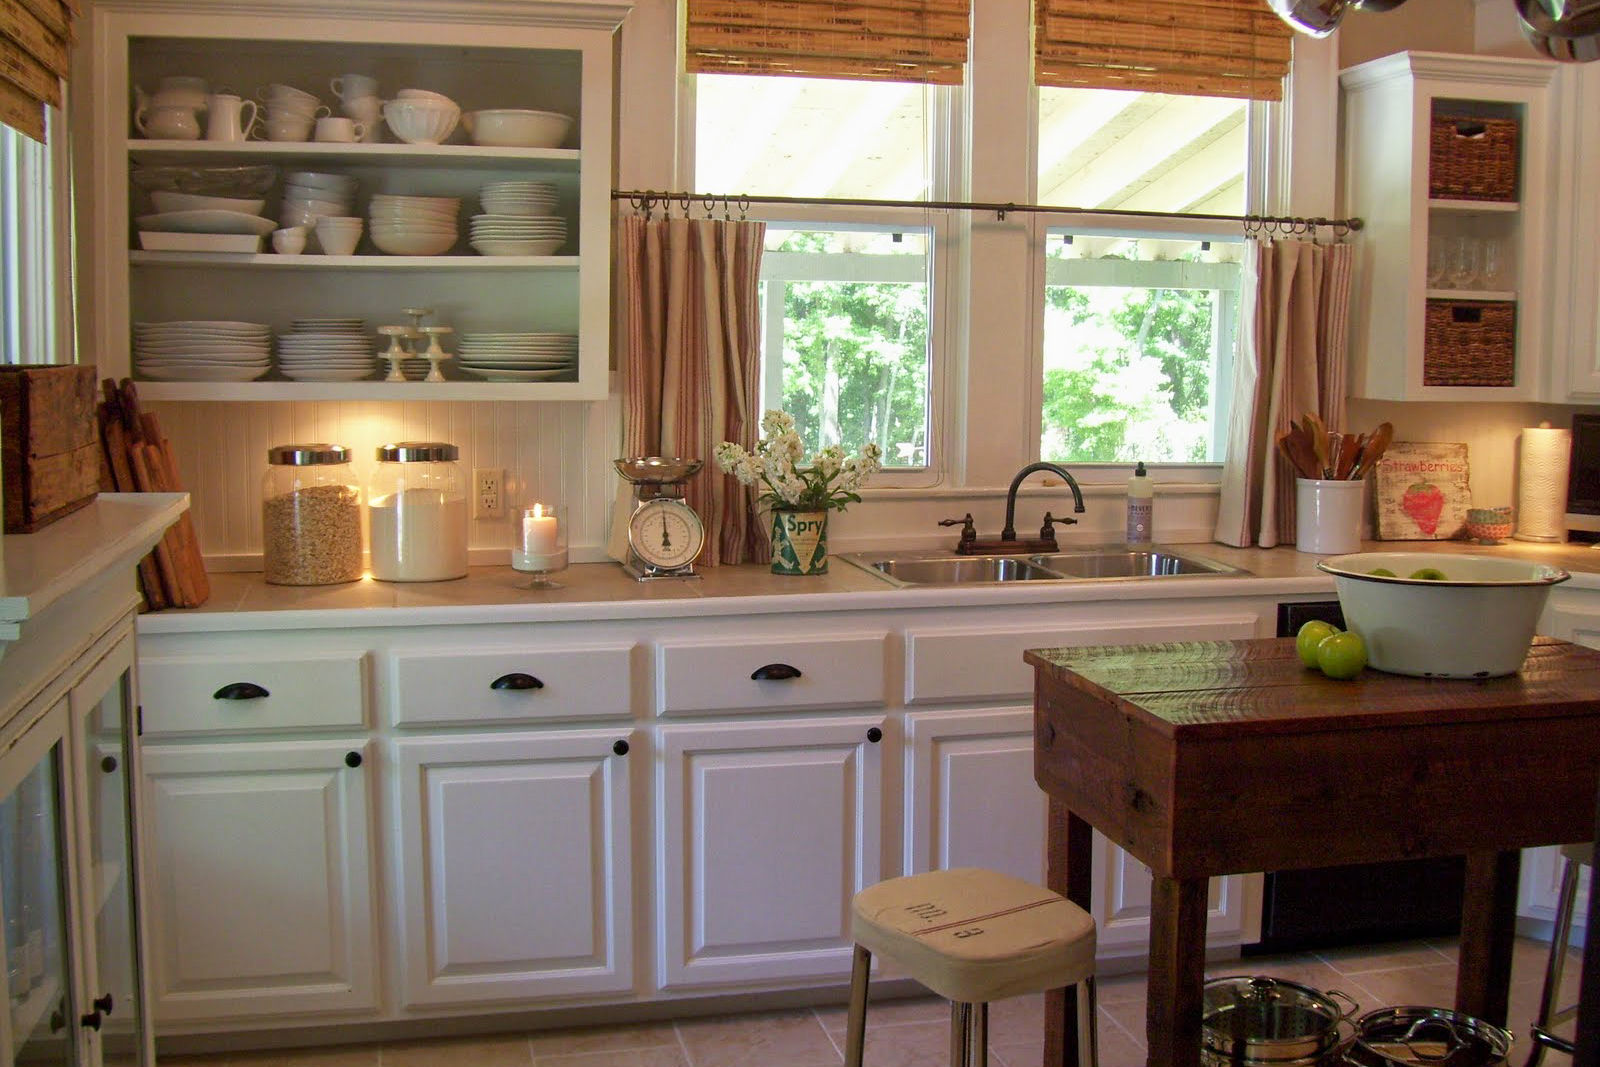 kitchen rehab islands for sale diy remodel budget